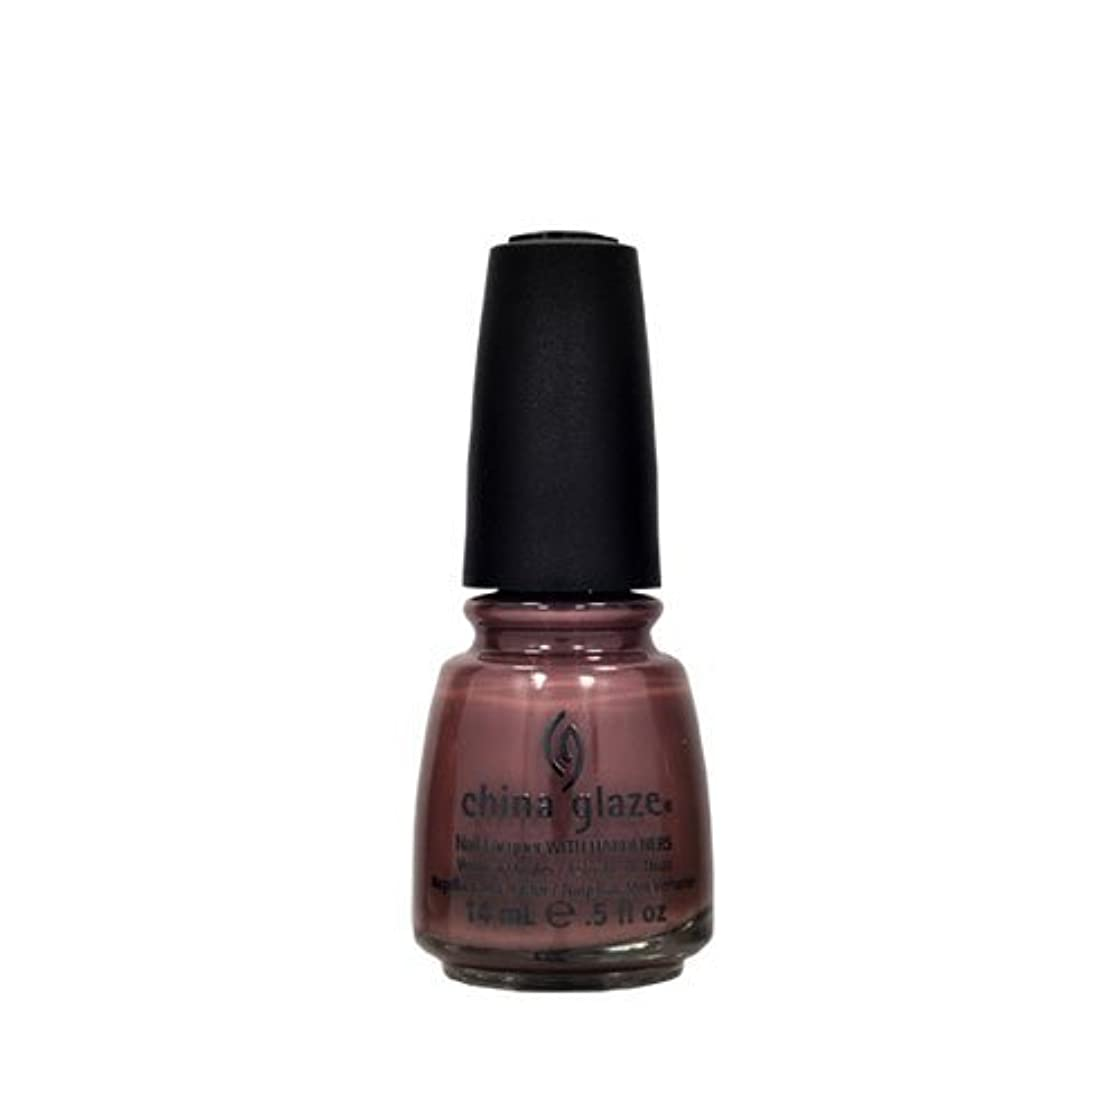 保険露出度の高い適用済み(6 Pack) CHINA GLAZE Capitol Colours - The Hunger Games Collection - Foie Gras (並行輸入品)